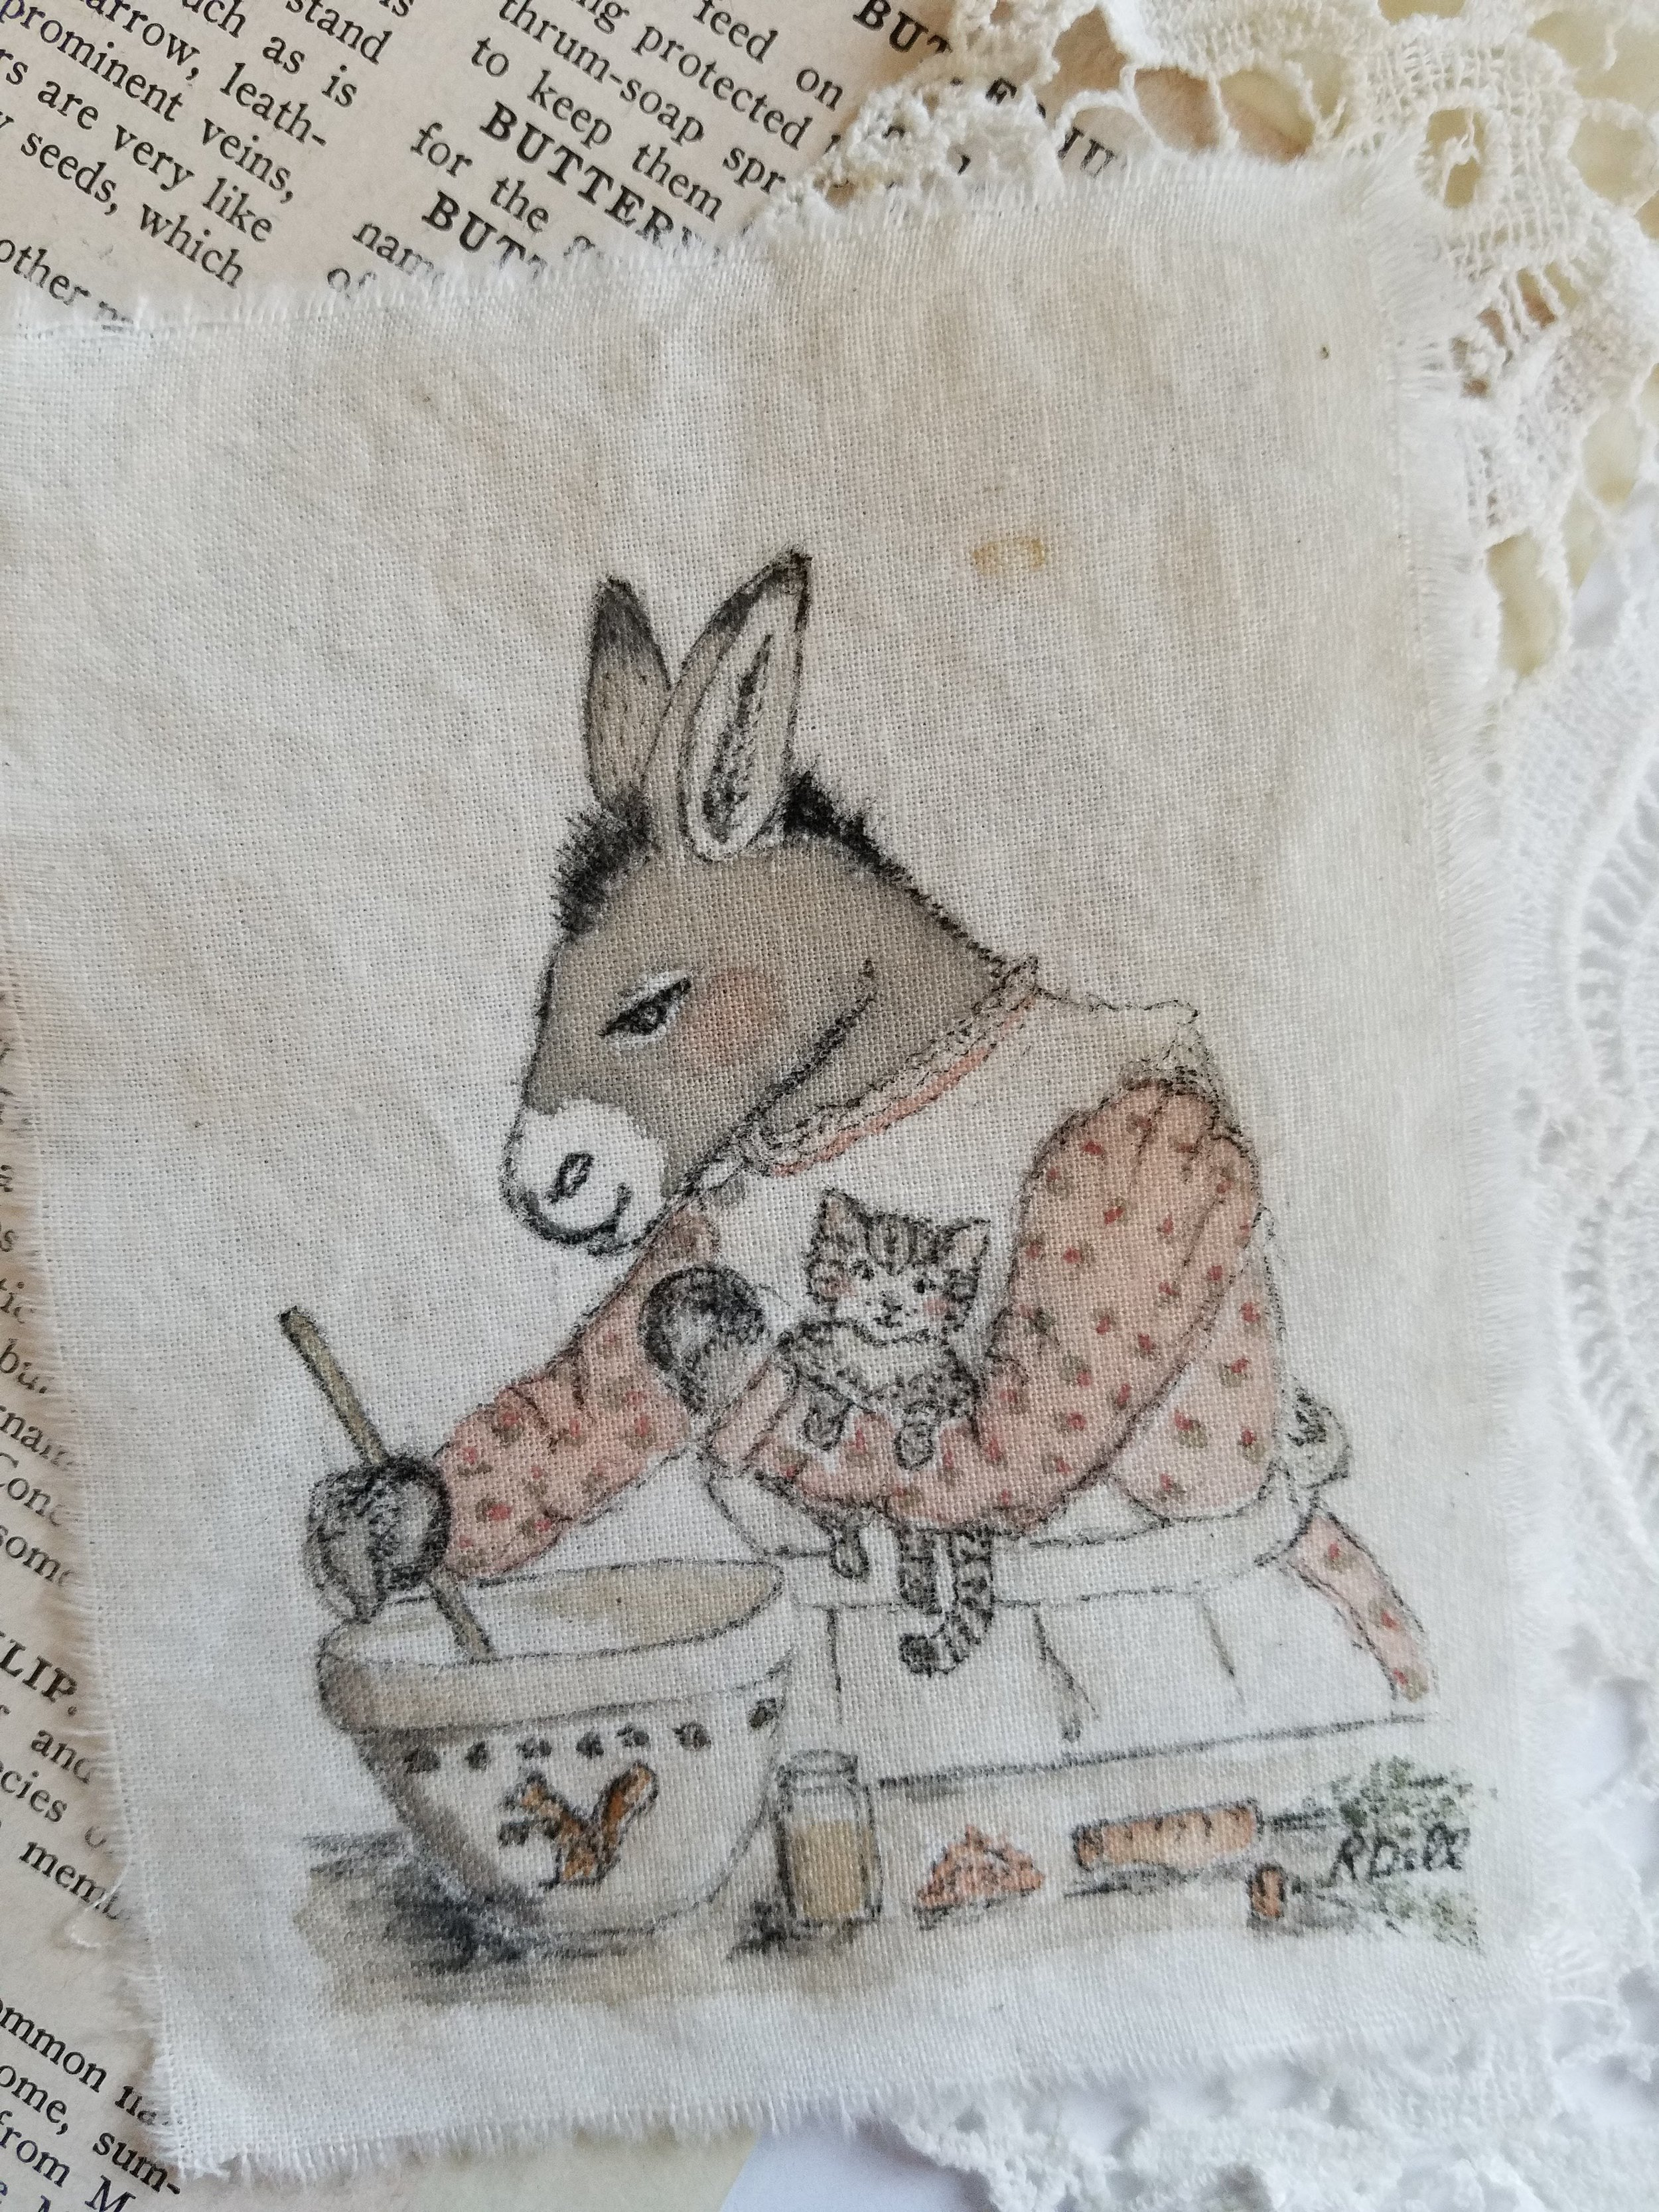 This was a commissioned fabric painting made for a donkey-lover. :)